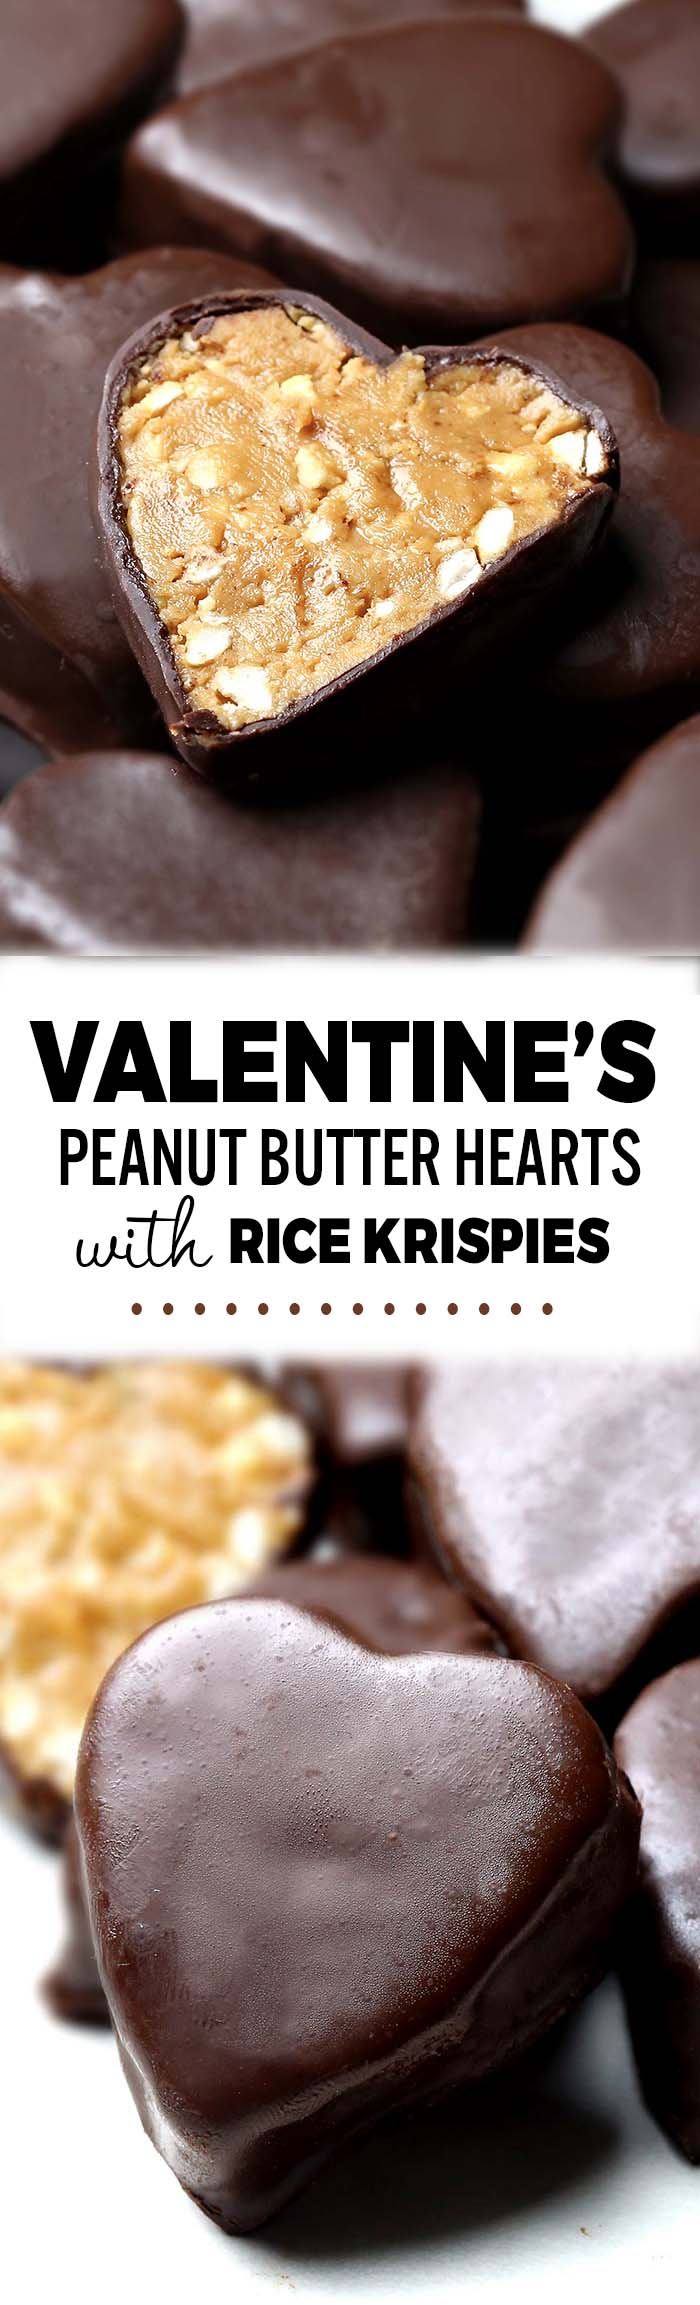 These Peanut Butter Hearts with Rice Krispies are everything you'd want in a mini dessert, and the perfect way to show them you care, from friends to family and everyone in between.